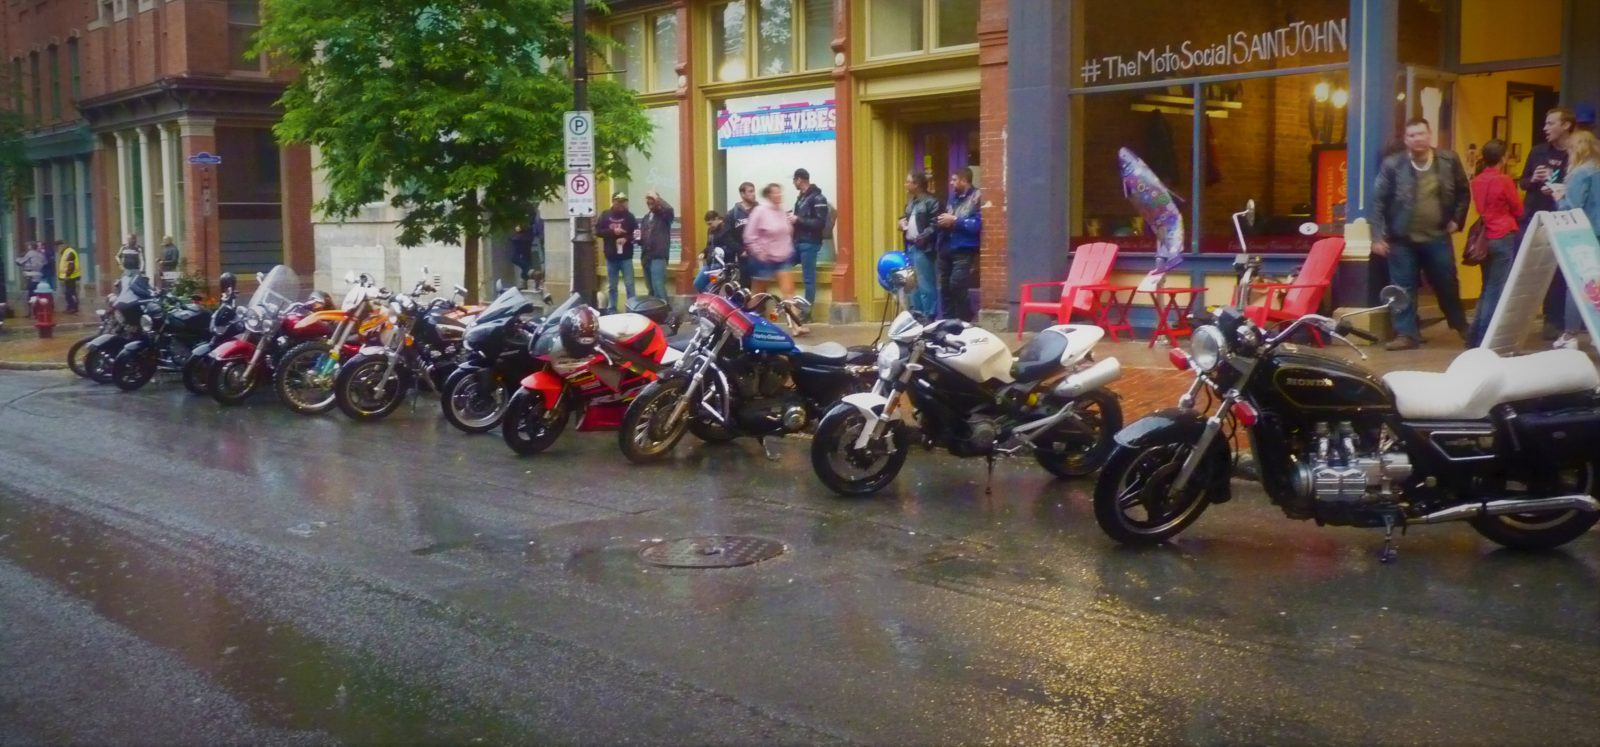 Don't miss these top motorcycle websites/blogs by women